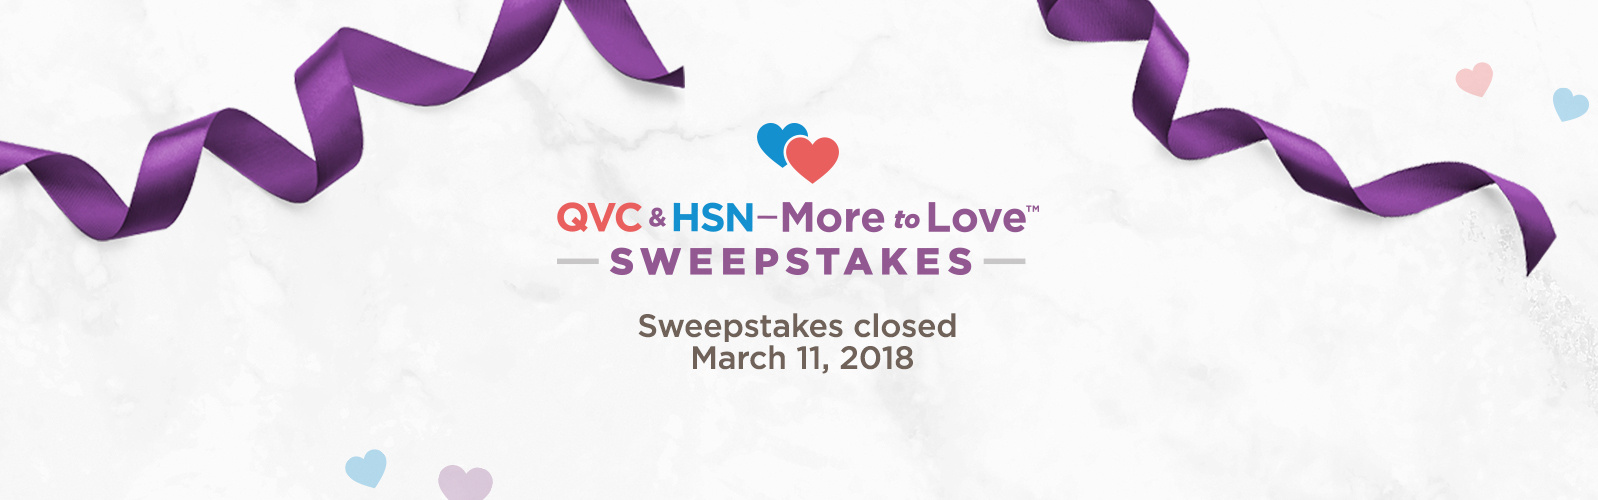 QVC & HSN—More to Love™ Sweepstakes. Sweepstakes closed March 11, 2018